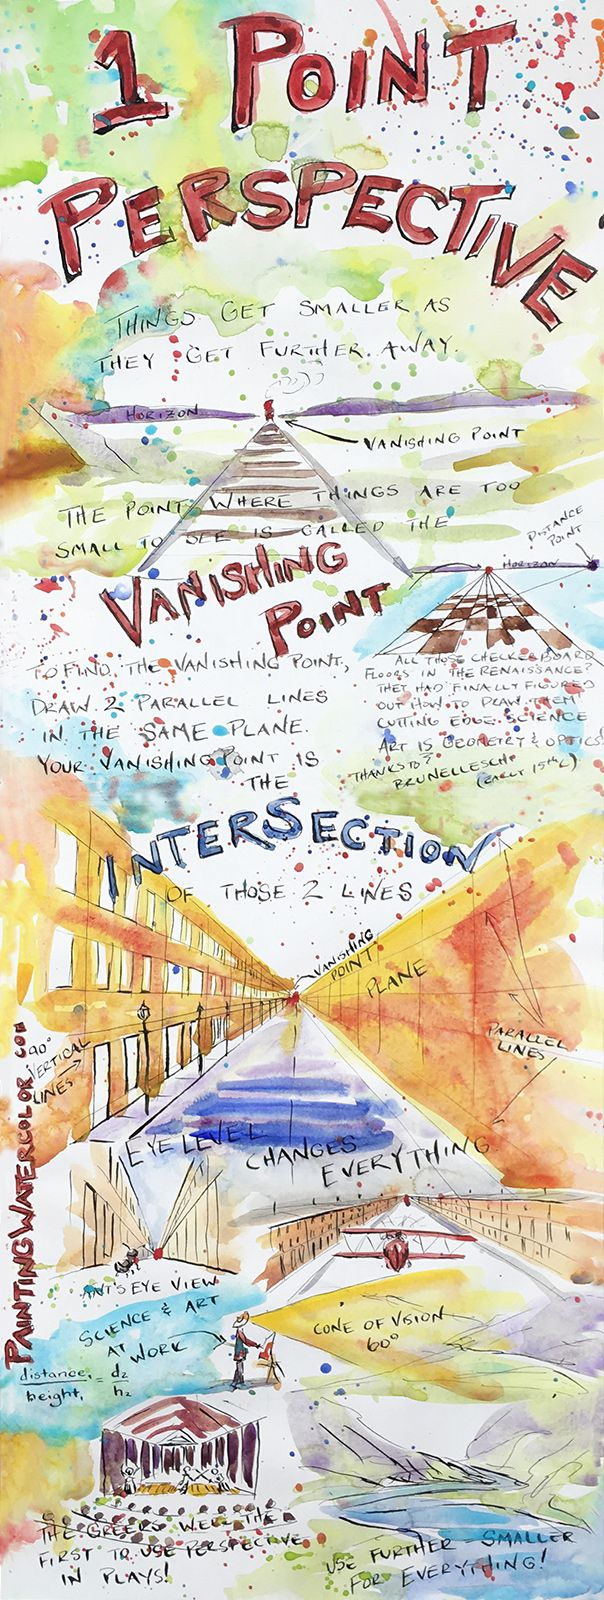 "truebluemeandyou: "" DIY Perspective in Drawing and Painting. My favorite art class ever was learning about perspective and using it to sketch and paint. In this post by Painting Watercolor, you learn about the vanishing point and horizon line. One..."